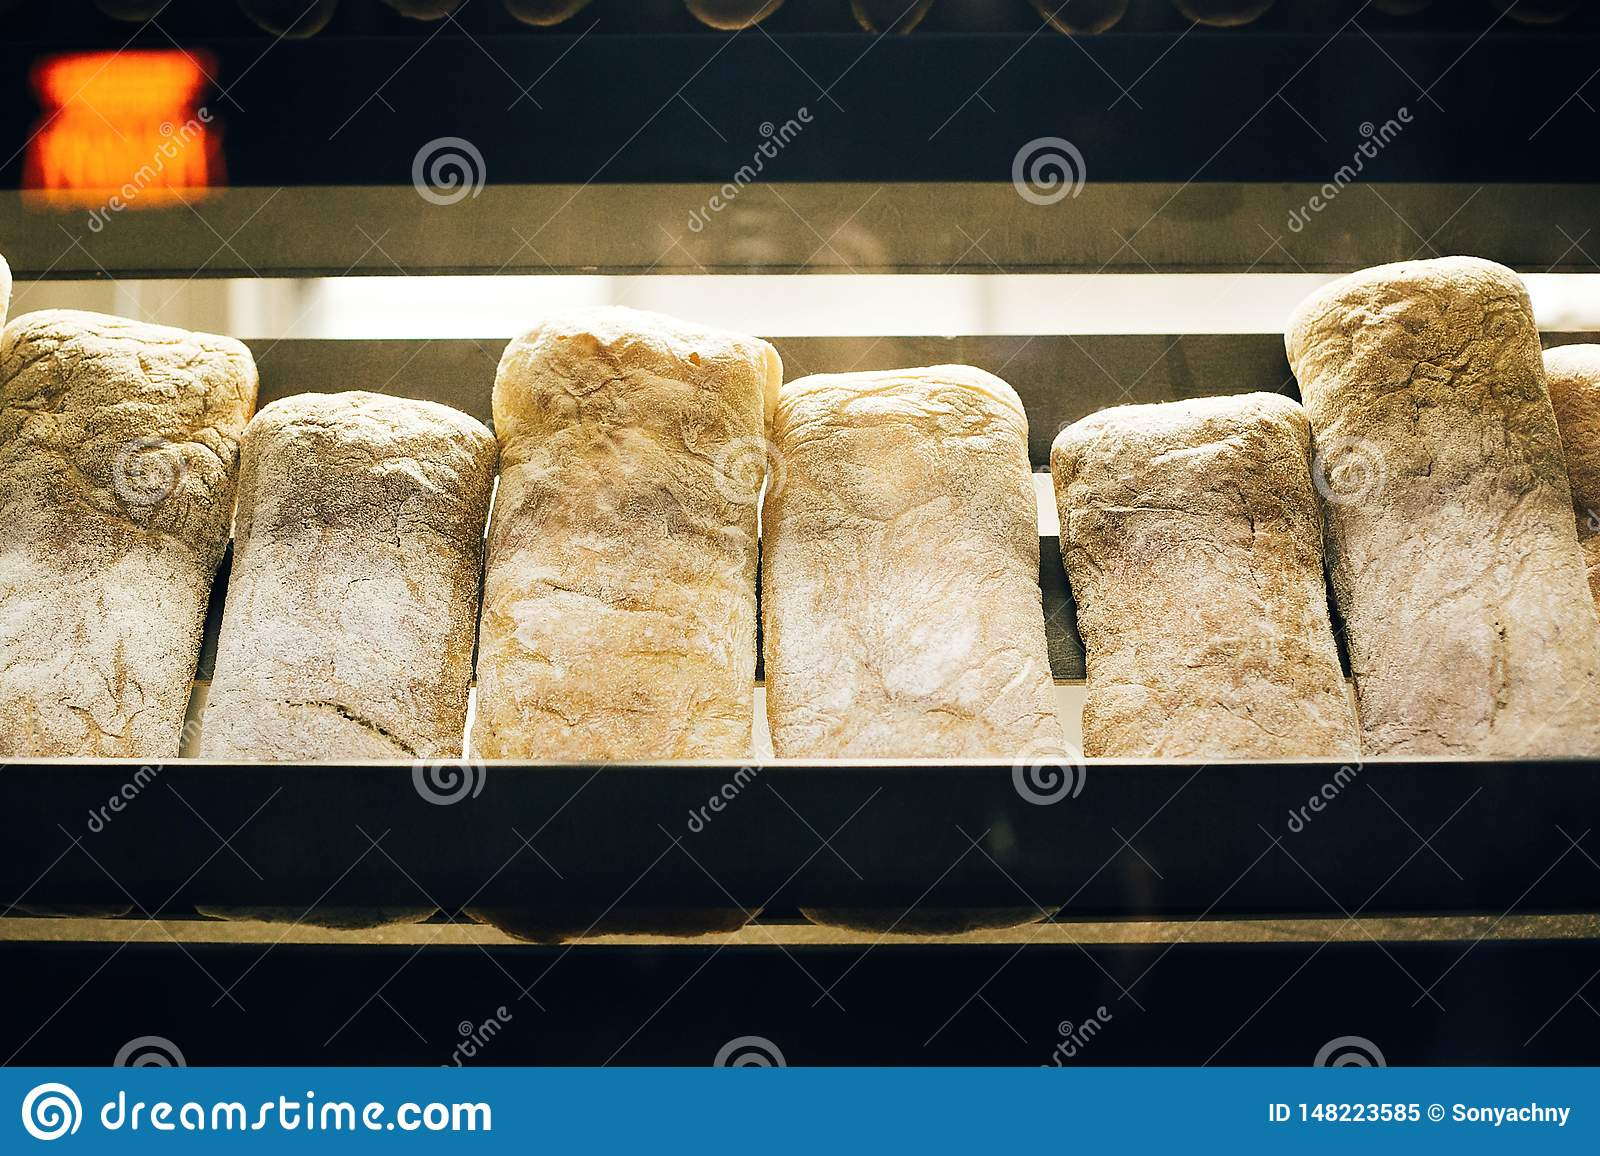 Fresh bread on shelves stand of a shop or bakery. Freshly baked bread loaves at window of store front. Organic pastry. Space for